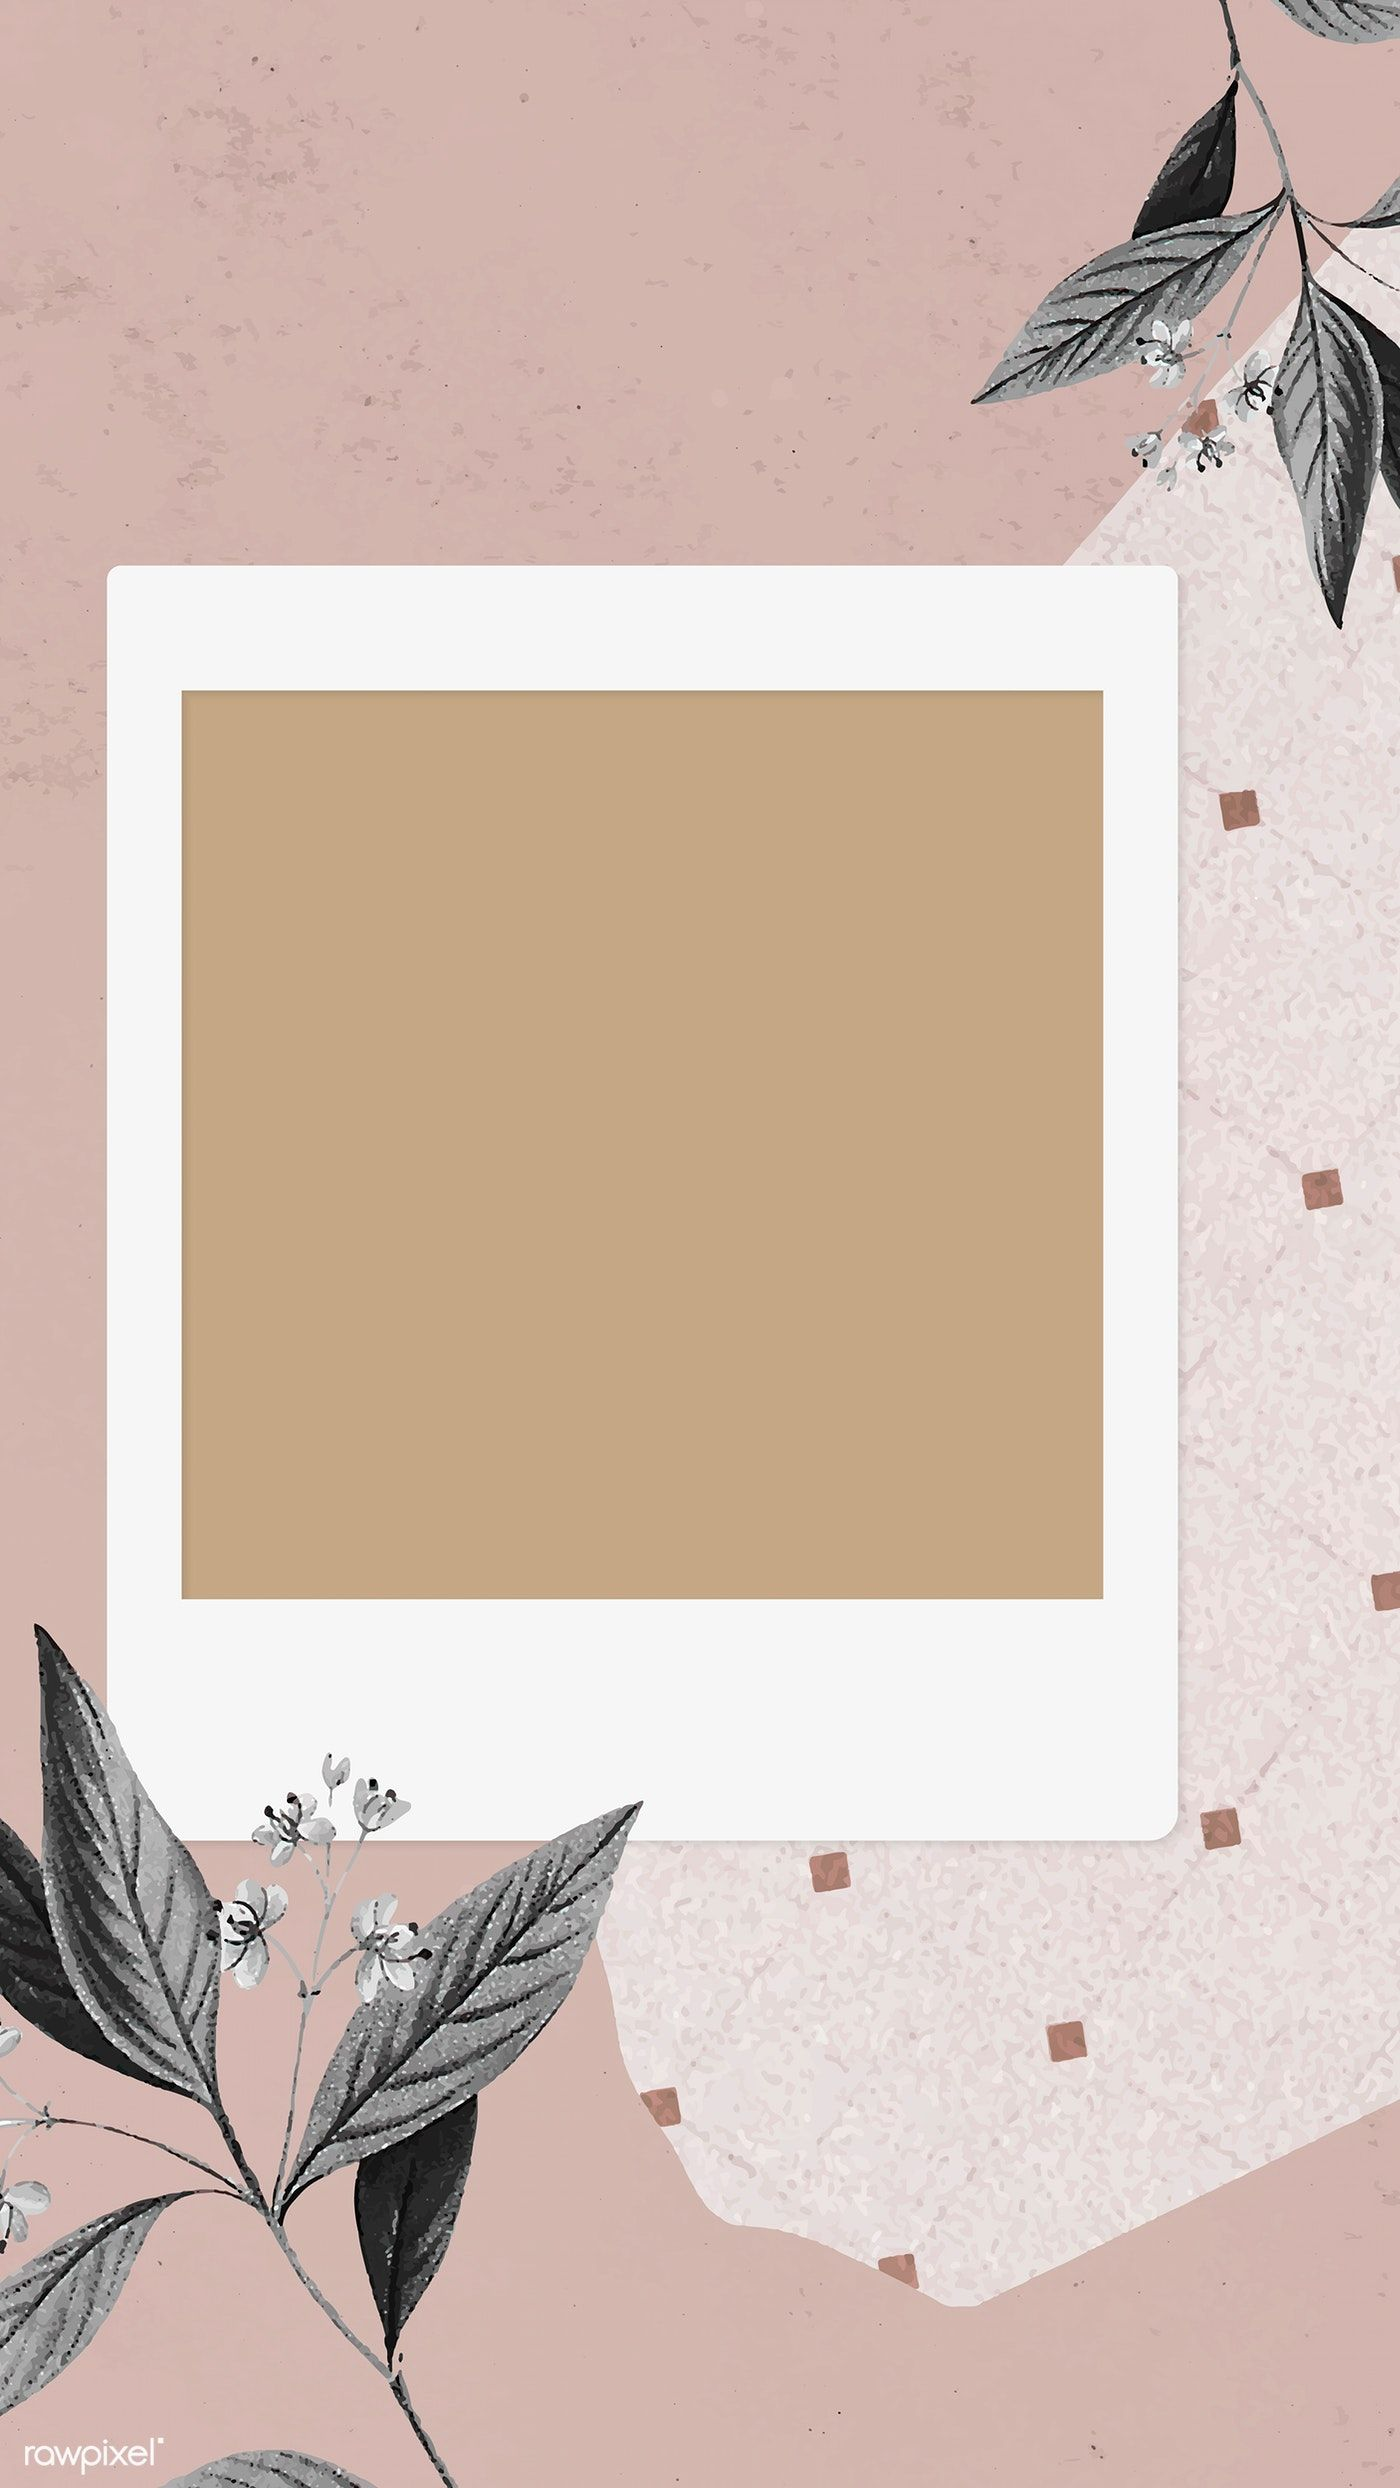 Download Premium Vector Of Blank Collage Photo Frame Template Vector Photo Collage Template Instagram Frame Template Instagram Photo Frame